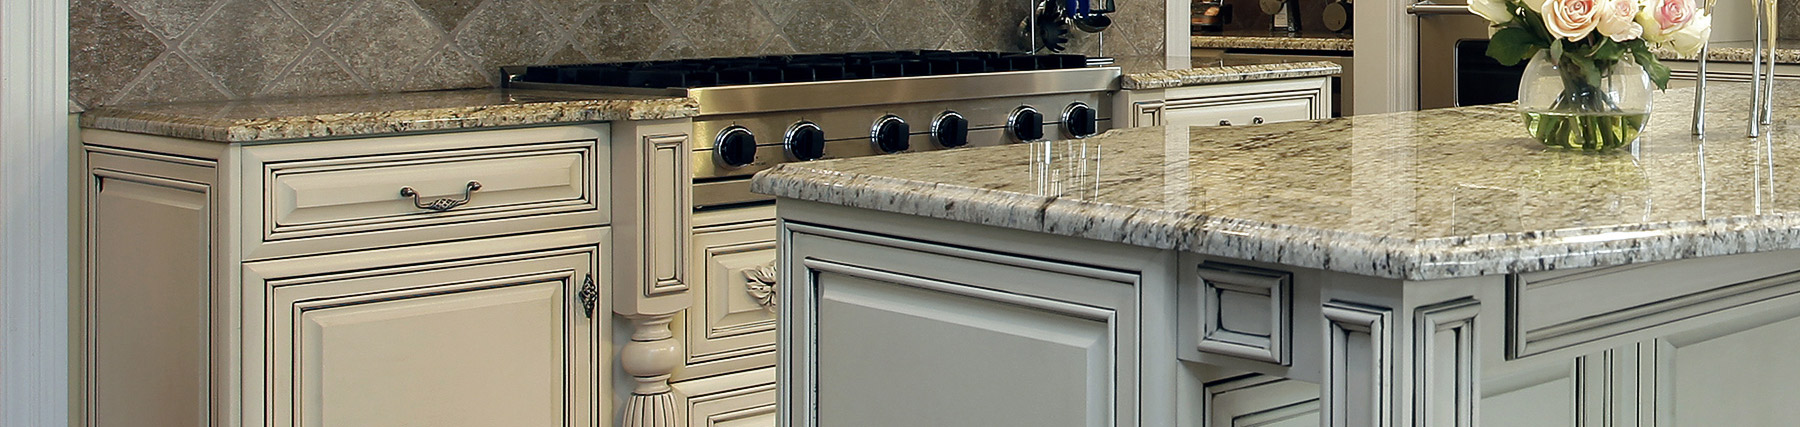 Granite Colors For Kitchen Countertops As Per Vastu : St. Louis, MO Granite Countertops Starting at $24.95 Per Sf